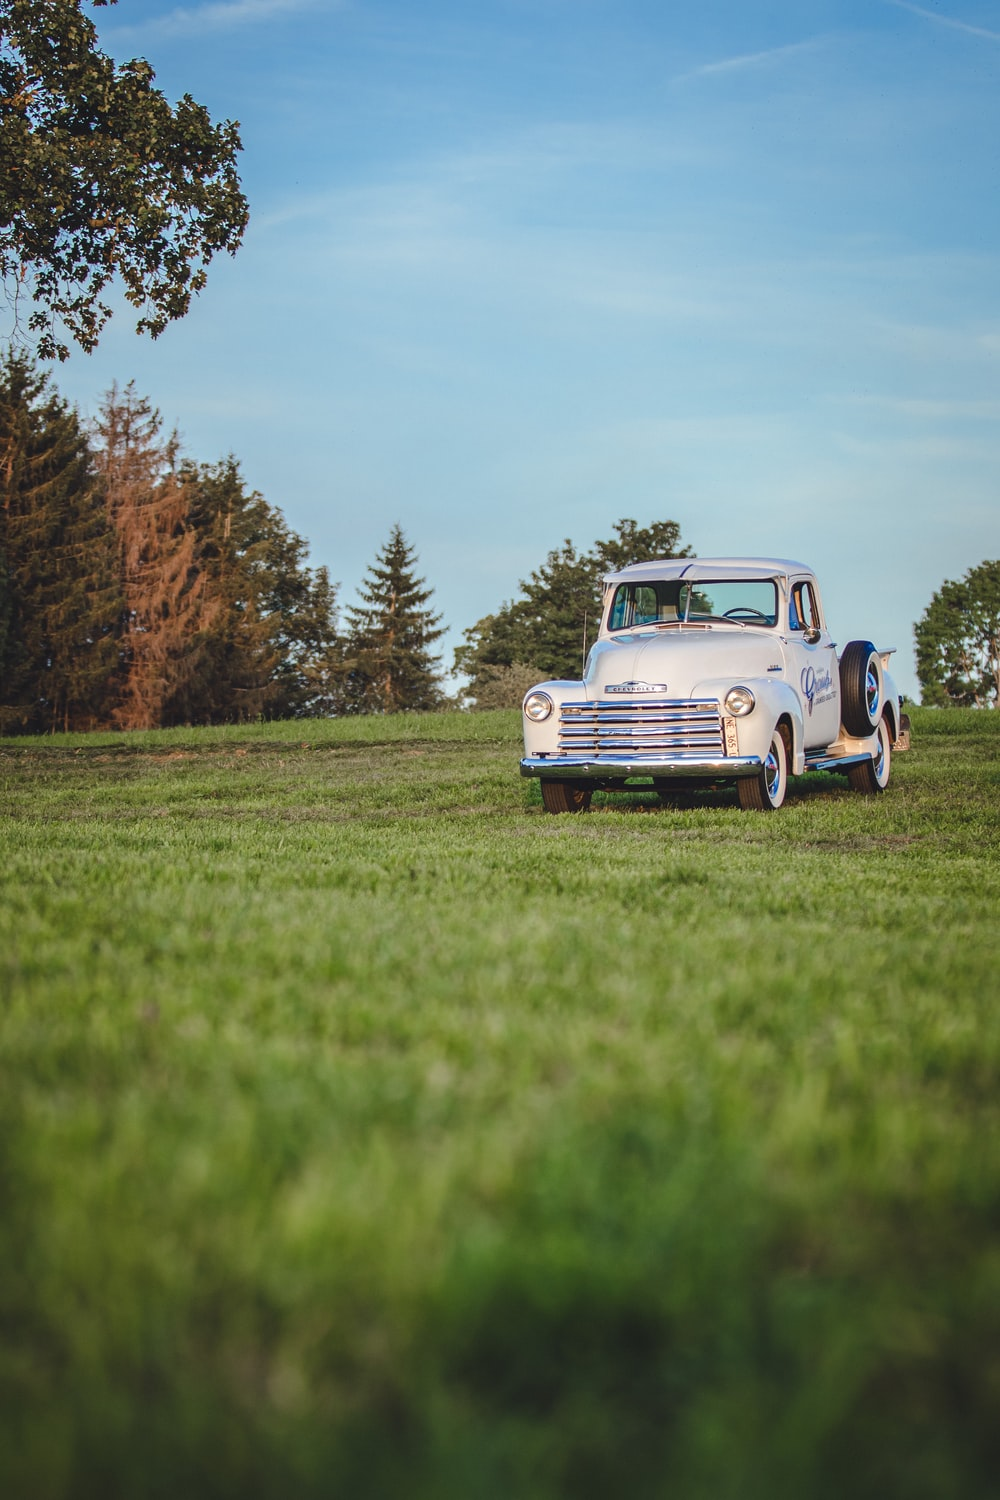 selective focus photo of classic white vehicle on grass field